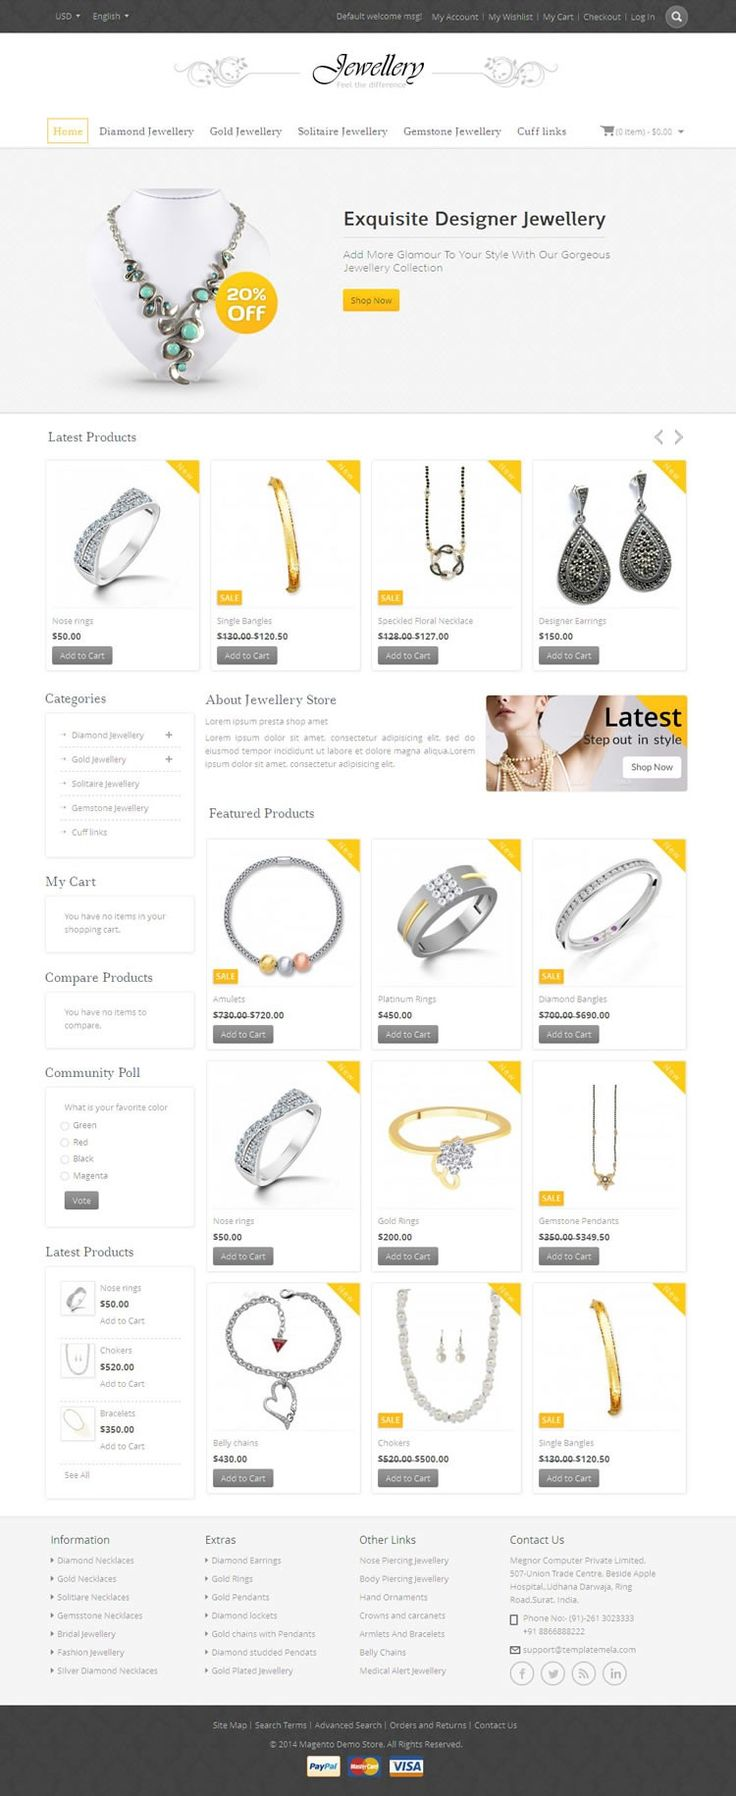 Jewellery #Magento #Template is designed for jewellery, watches, cosmetic, apparel and clothes store. Jewellery Magento Template is looking great with colors. All sub pages are customized. It is very nice with its clean and professional look. http://www.templatemela.com/jewellery-magento-template.html